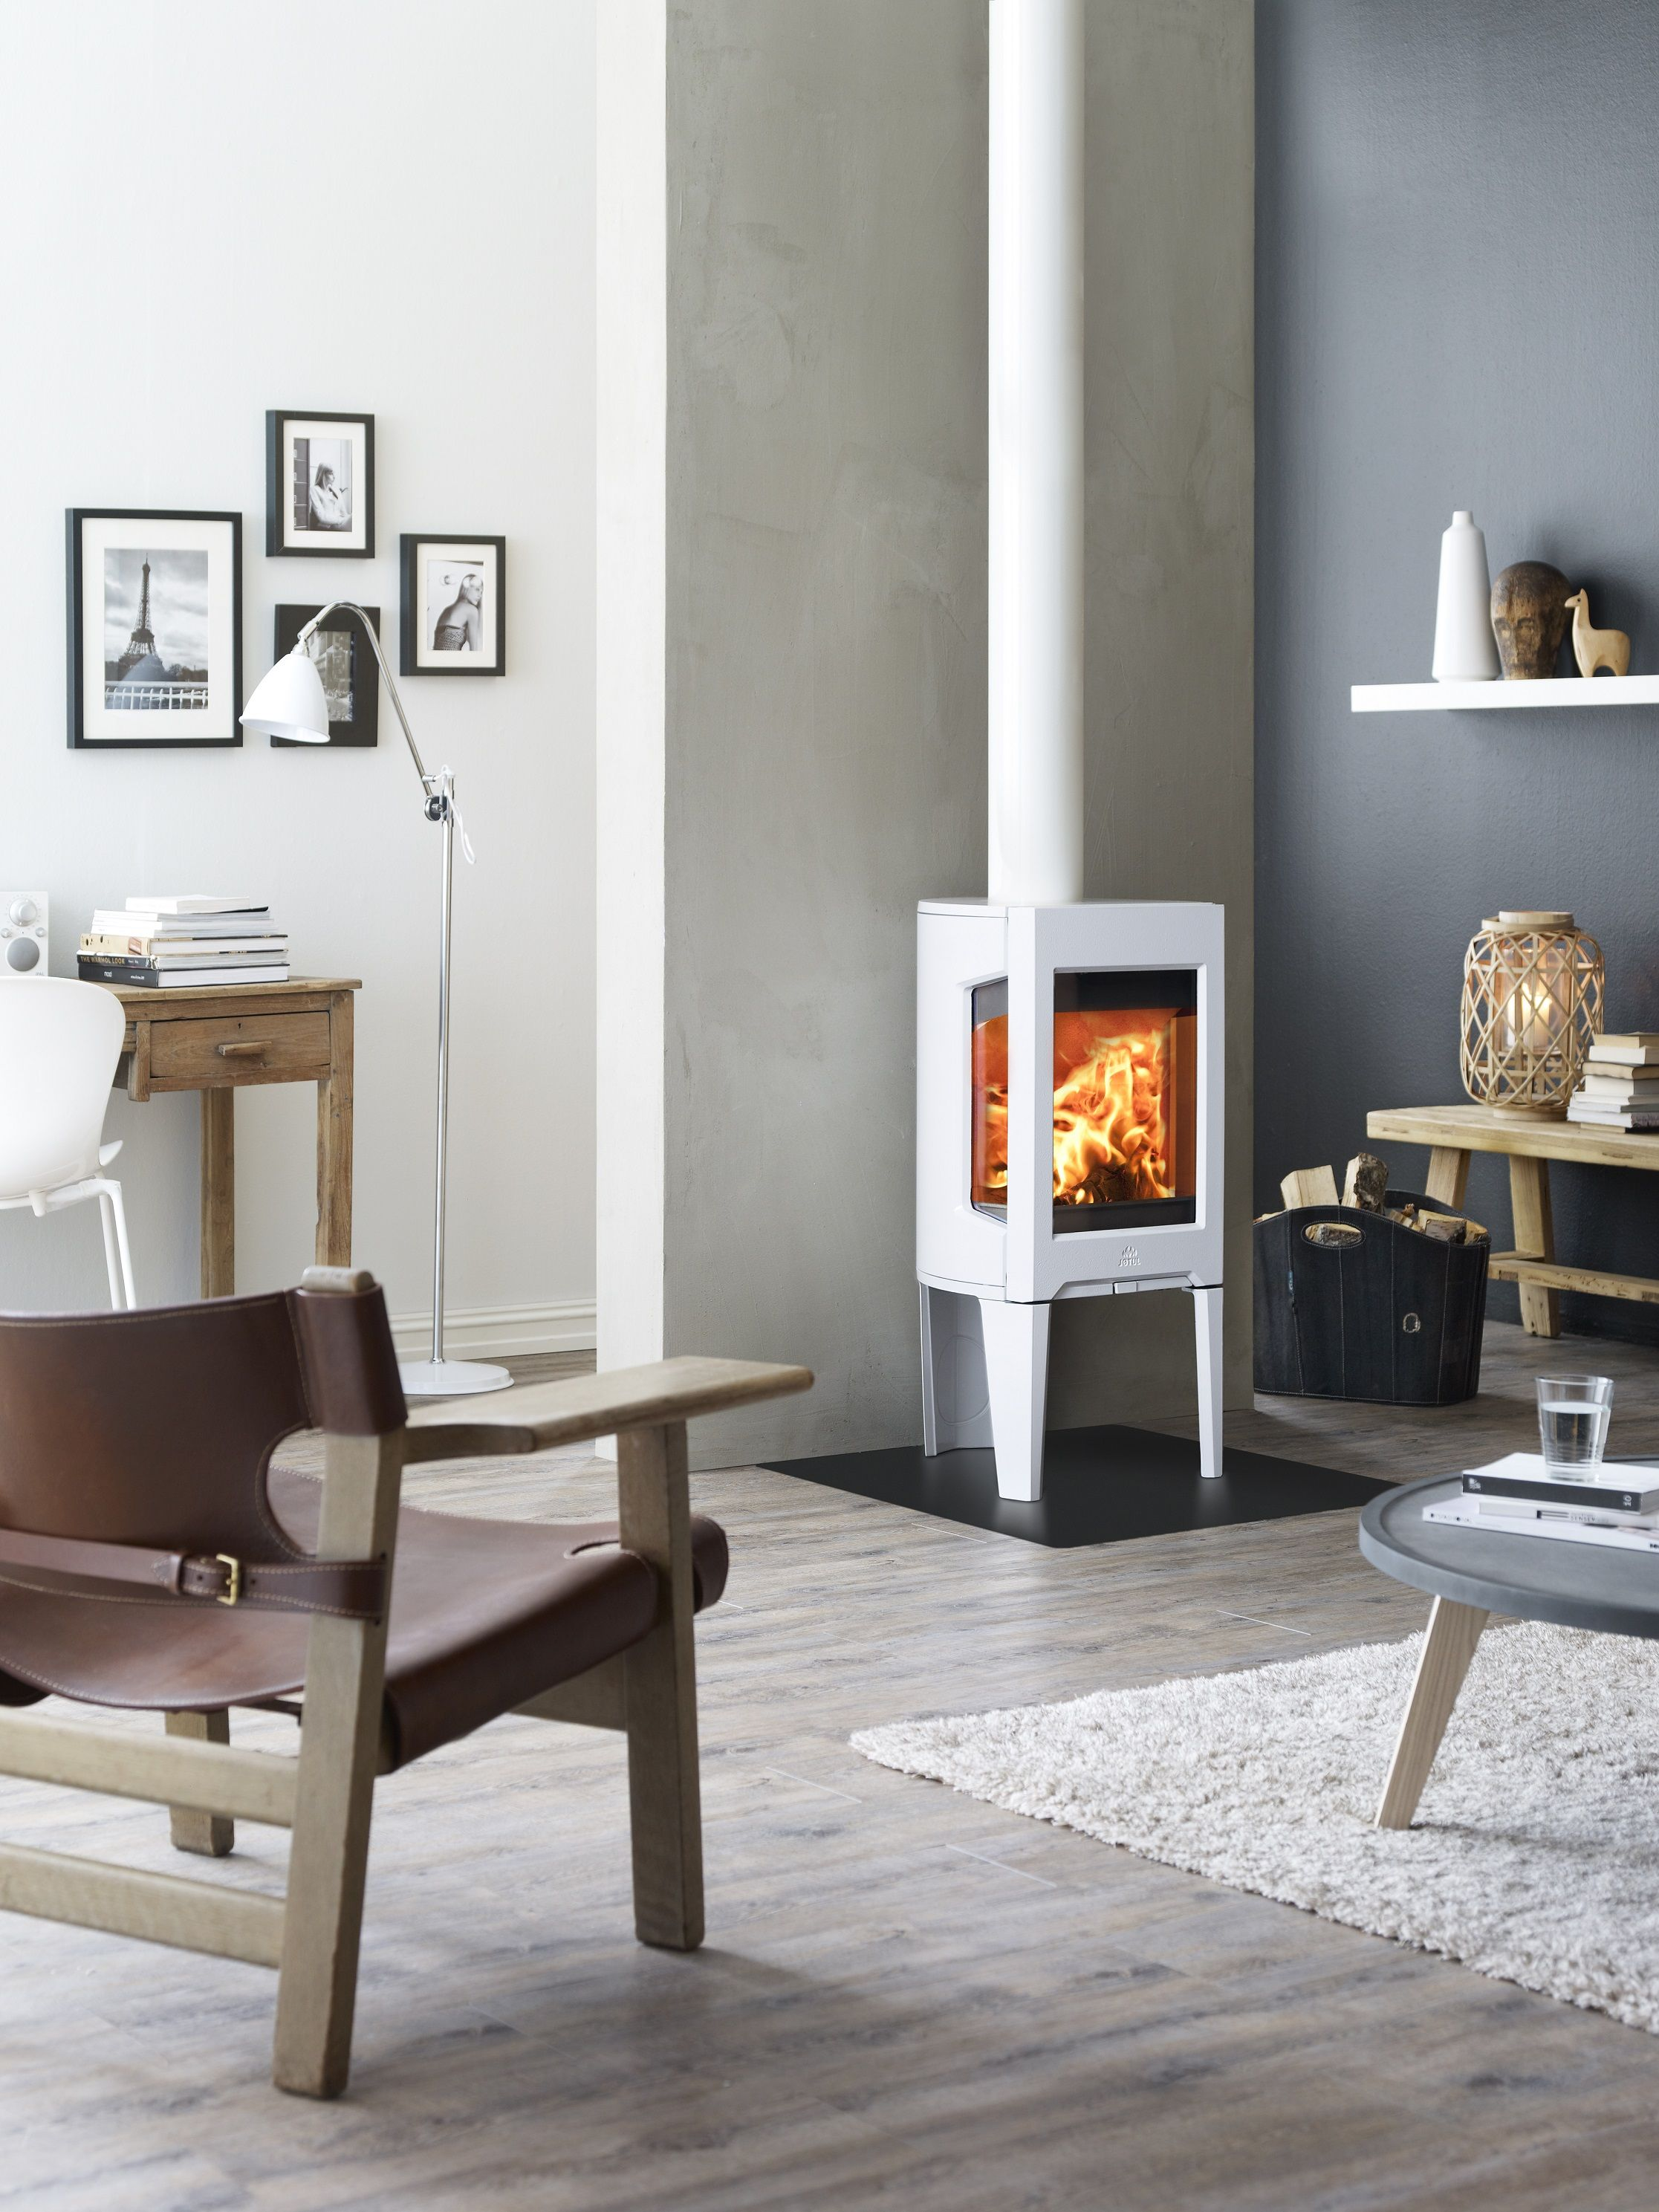 Kaminofen Red Dot Design Jotul F163 Wood Burning Stove Is A Reddot Award 2011 Winner